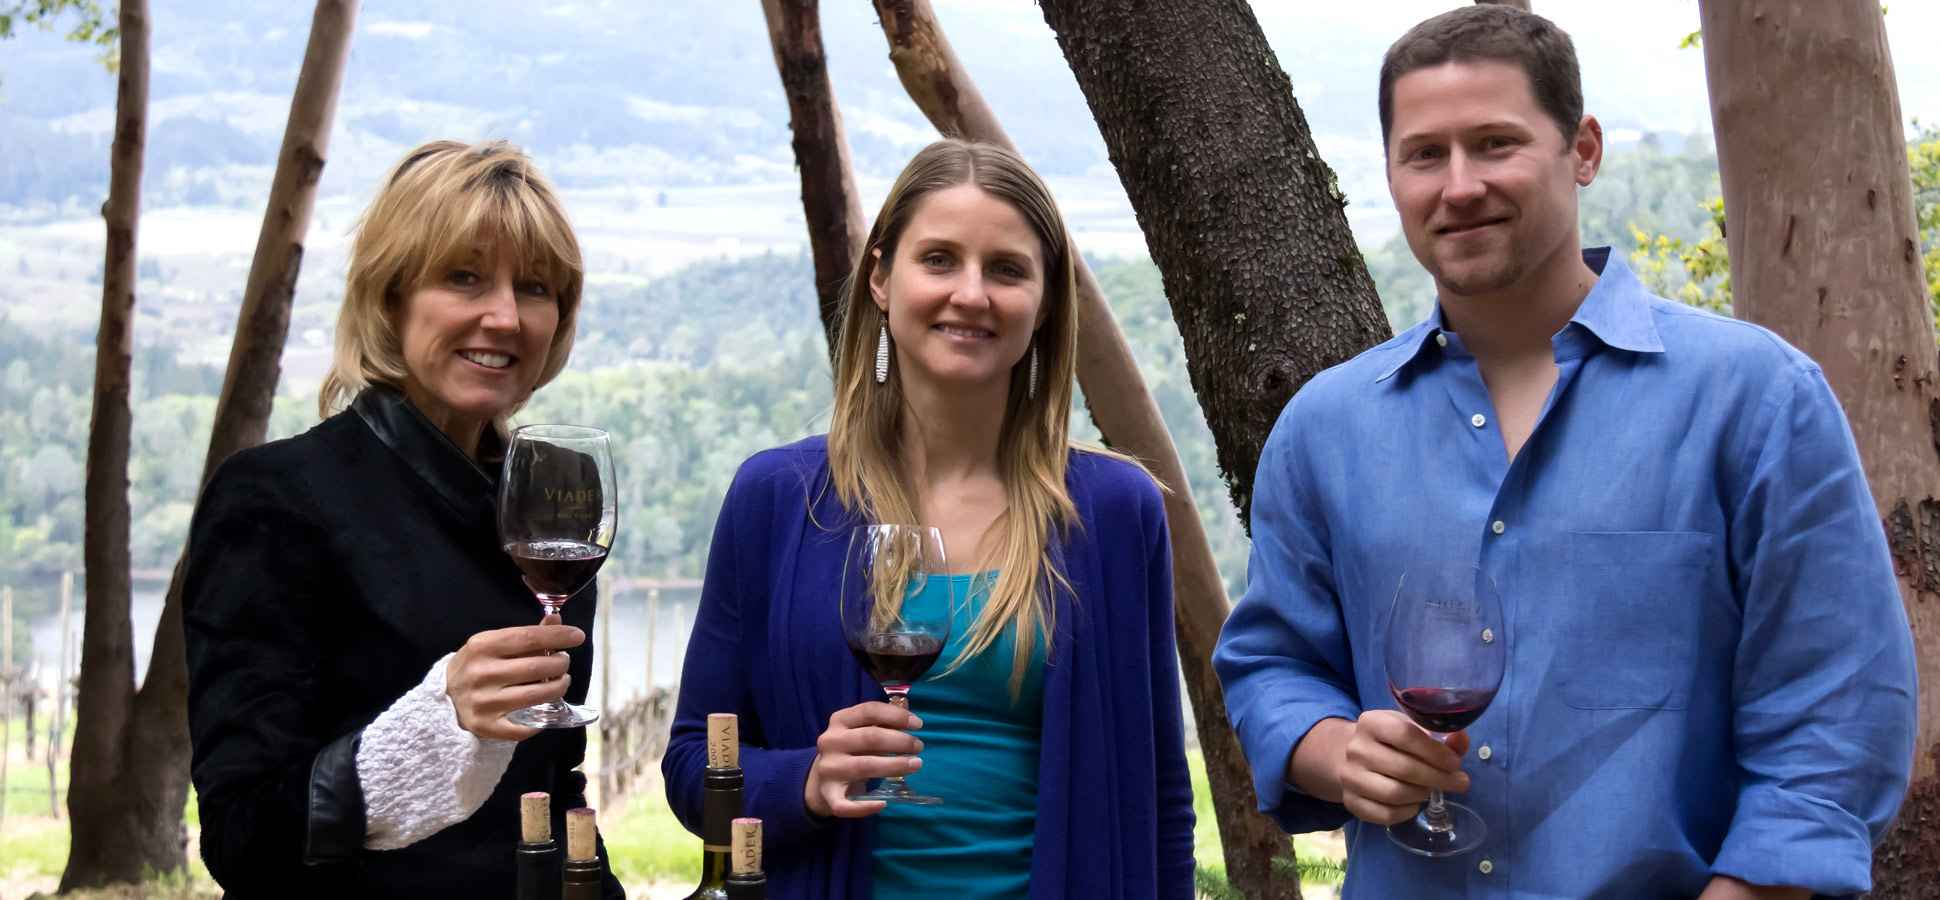 This Napa Winemaker Rebuilt a $4.5 Million Business After Losing It All